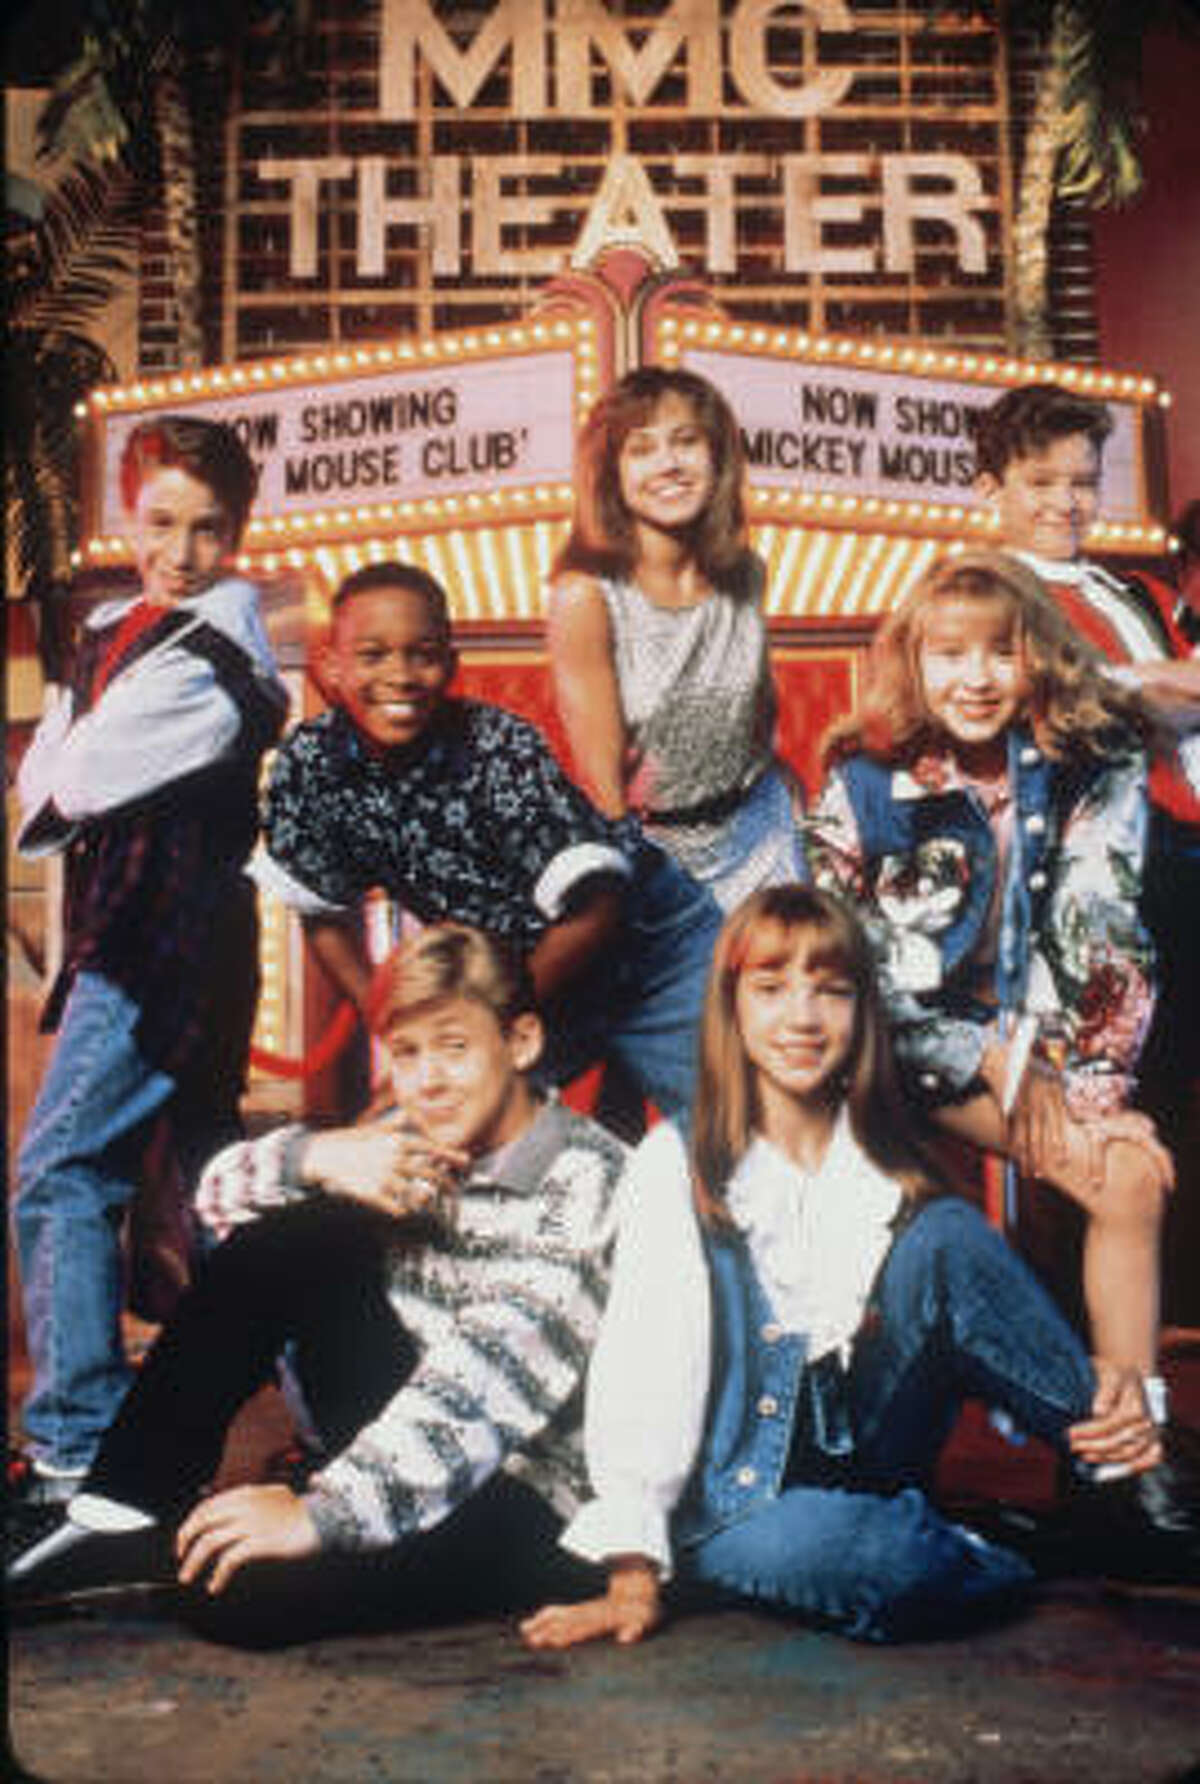 1995: Spears in the Mickey Mouse Club, bottom right, with fellow budding stars Justin Timberlake and Christina Aguilera.